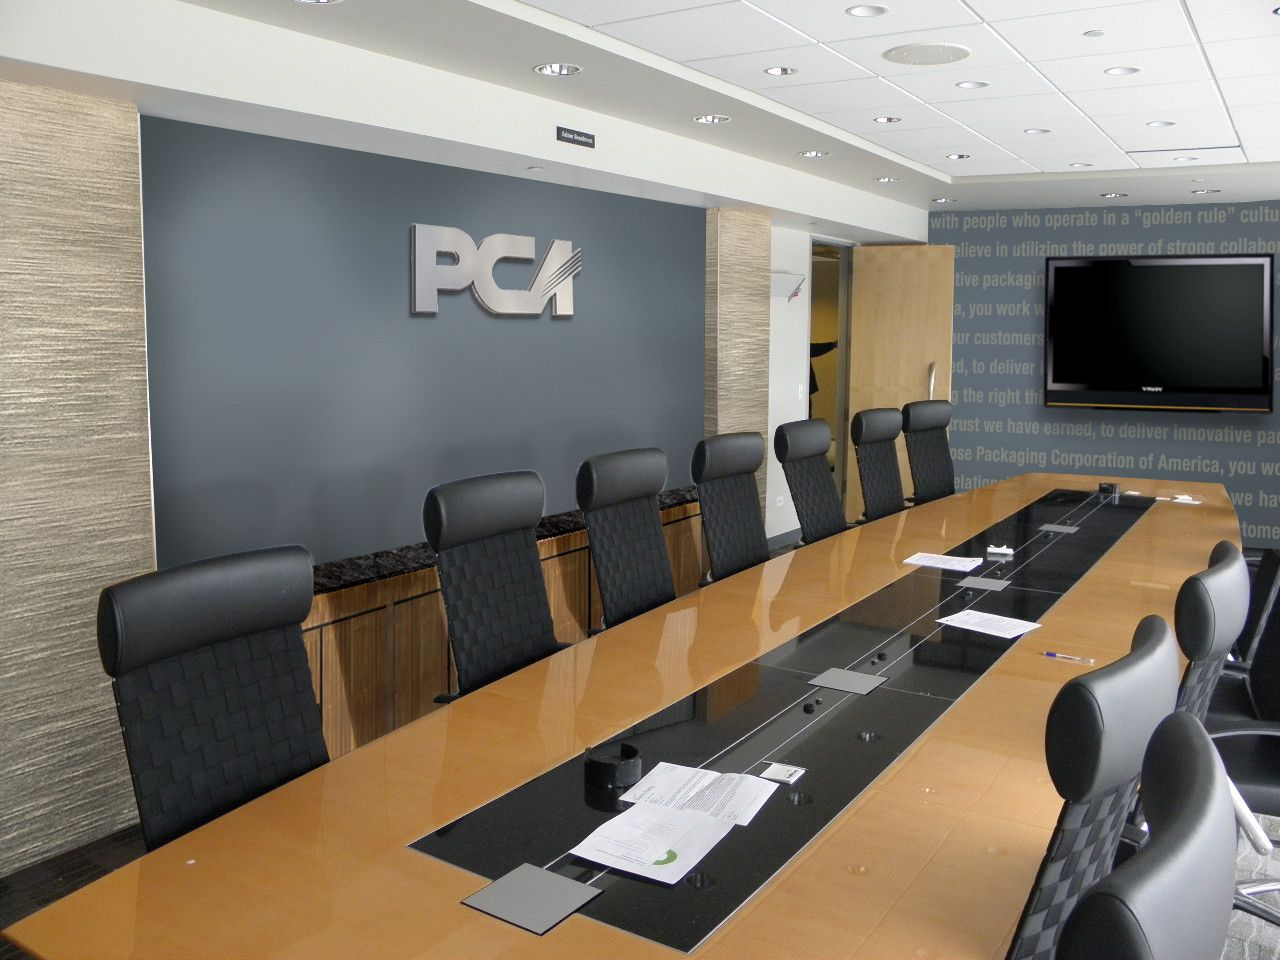 corporate interiors can stimulate the interests of your customer base the moment they enter your building